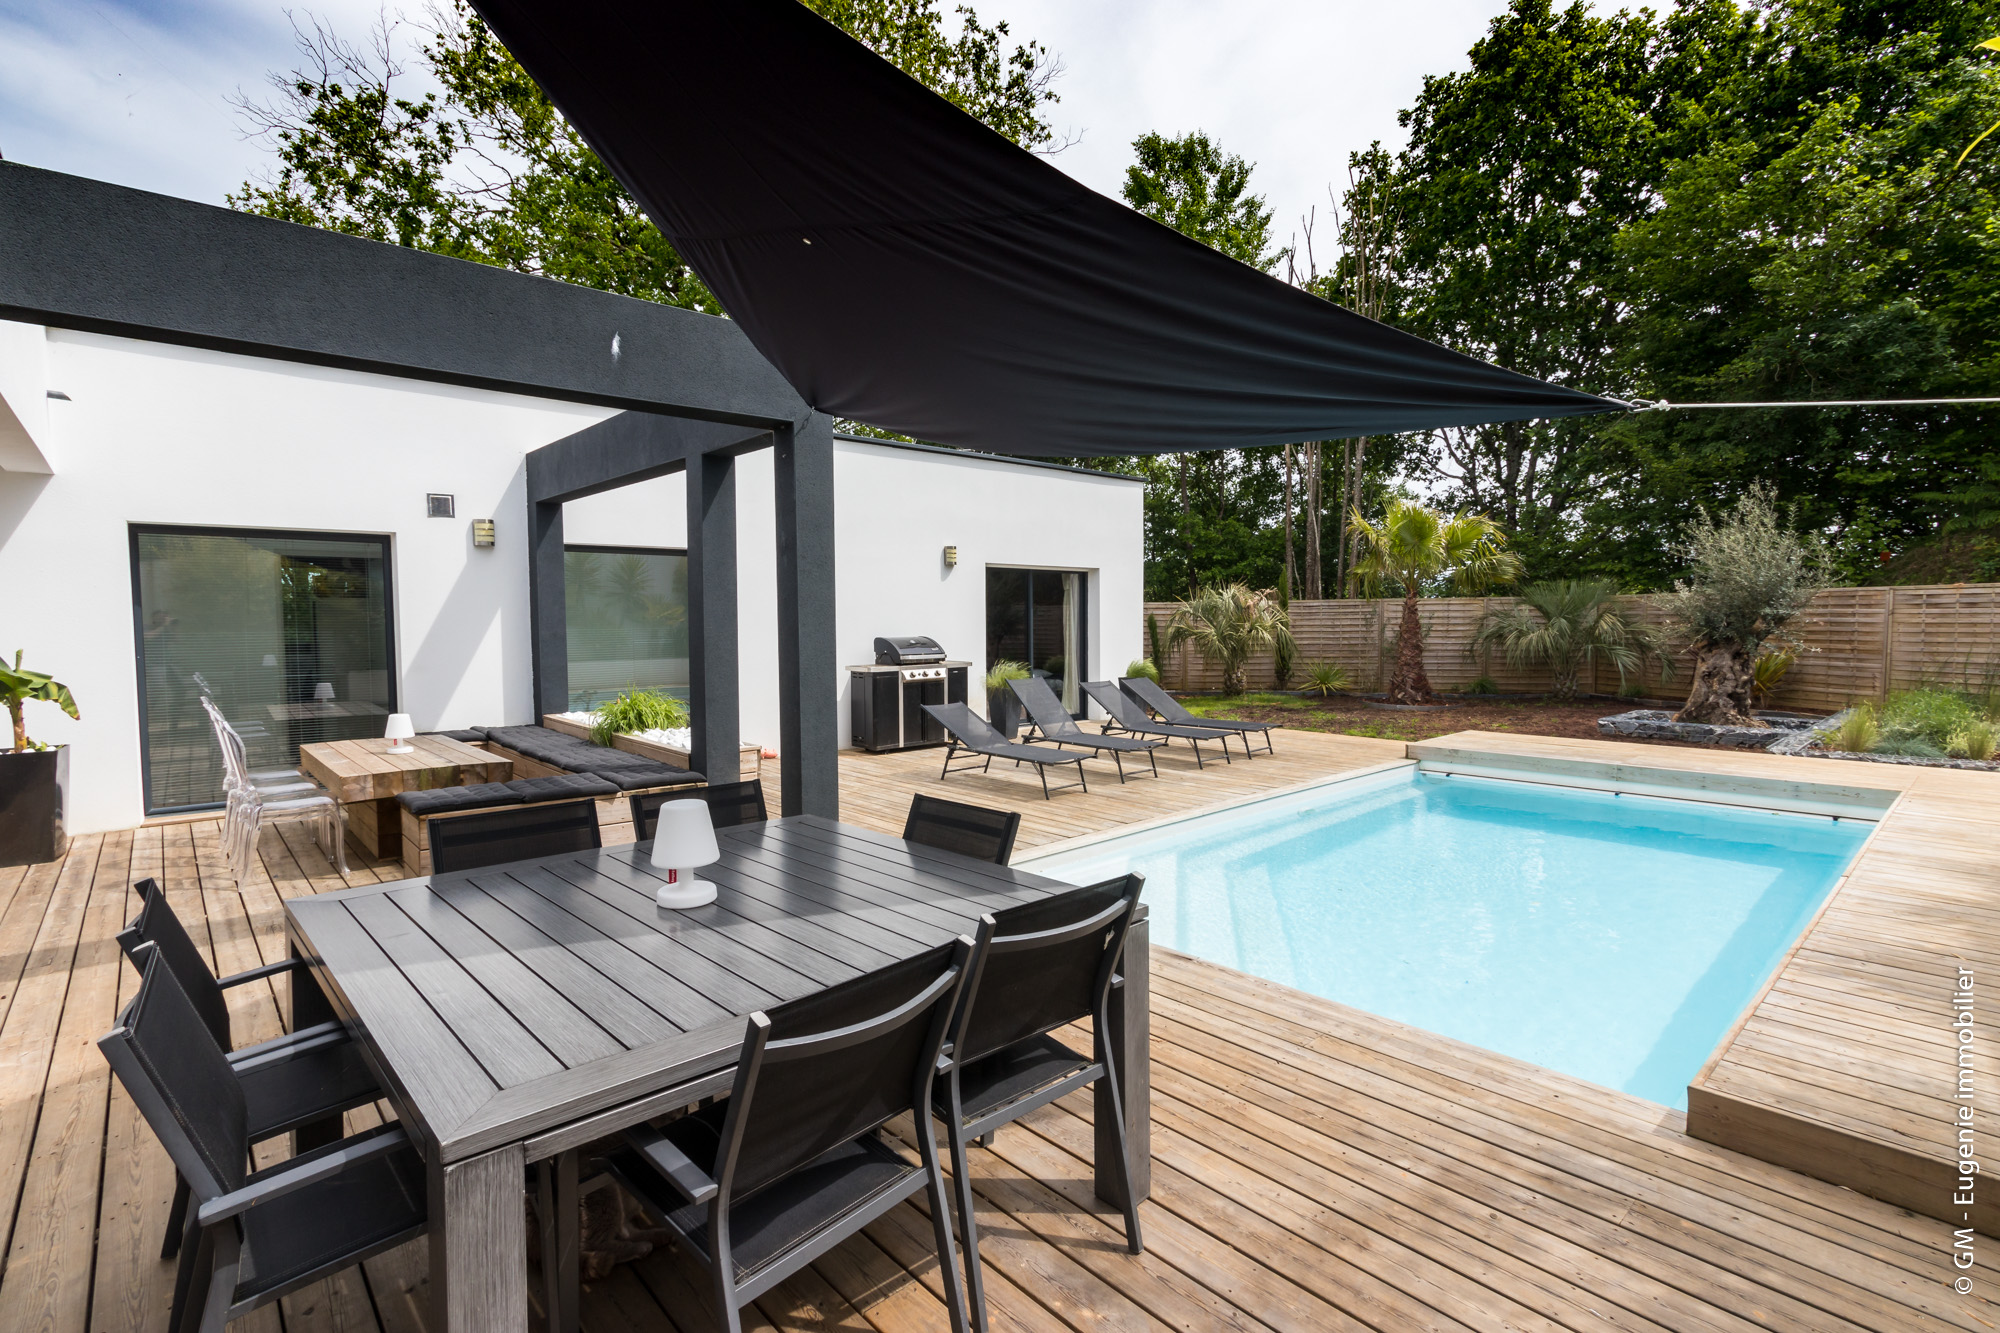 Villa Contemporaine 260m² avec Piscine divisé en 2 appartements